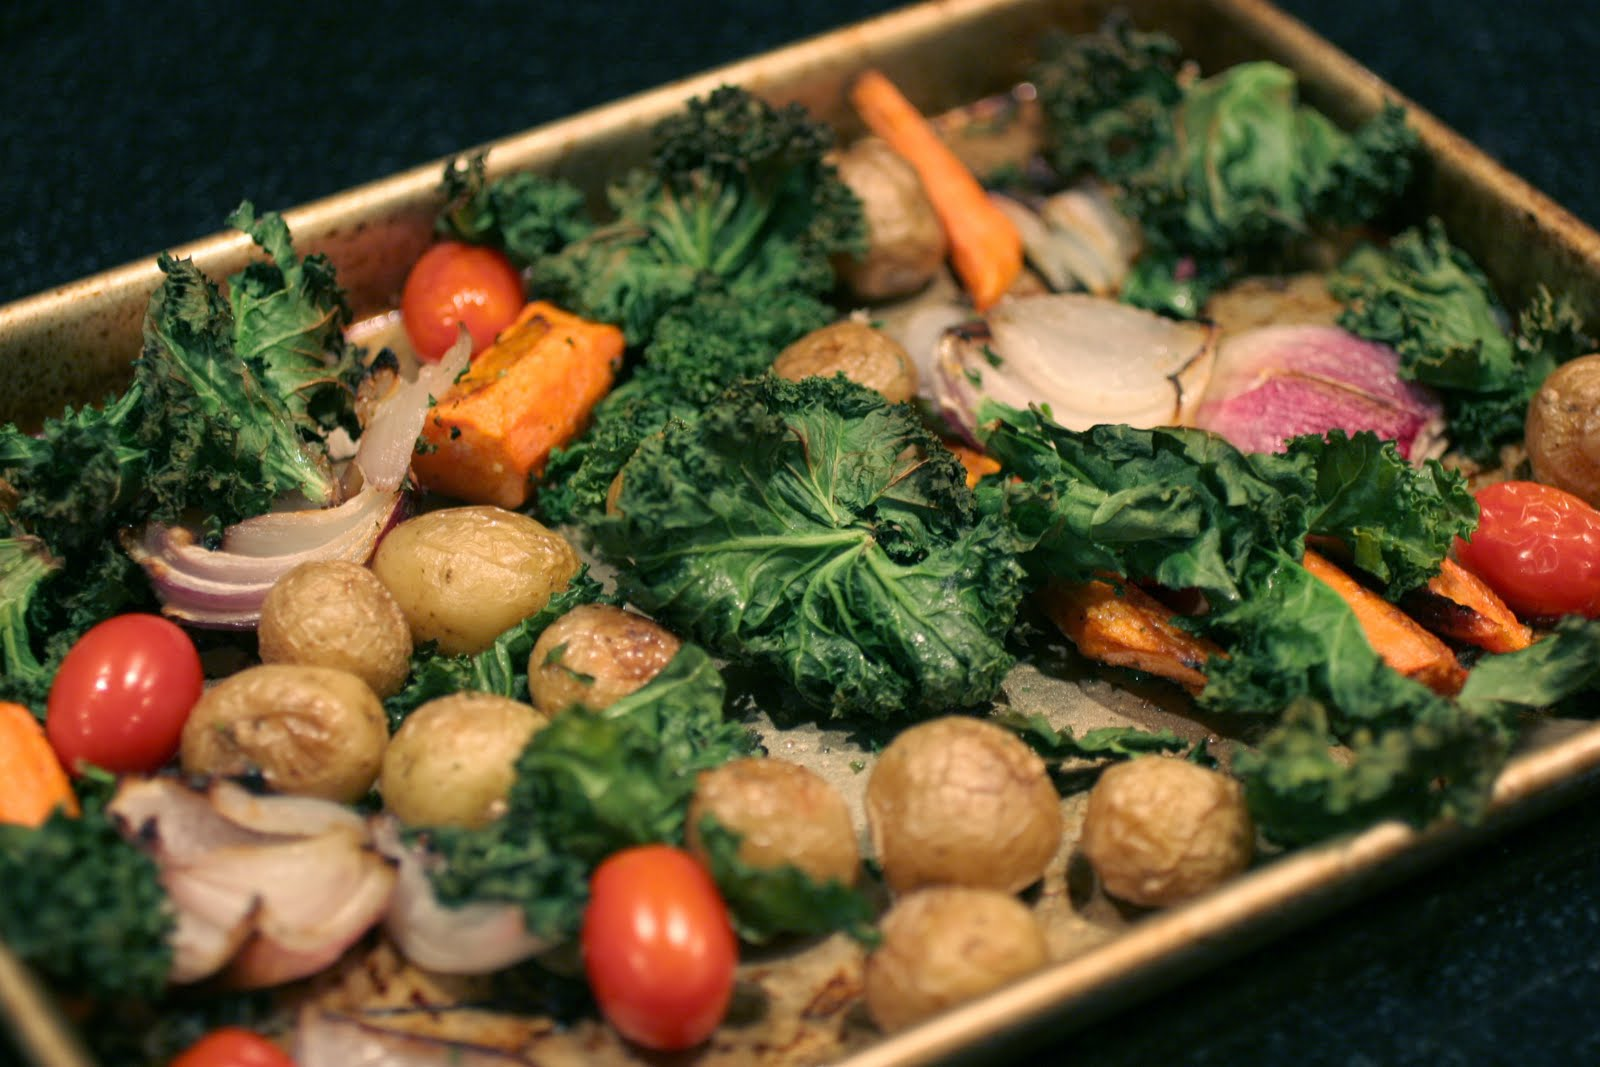 Roasted veggies (new potatoes, carrots, red onion, kale and tomatoes ...